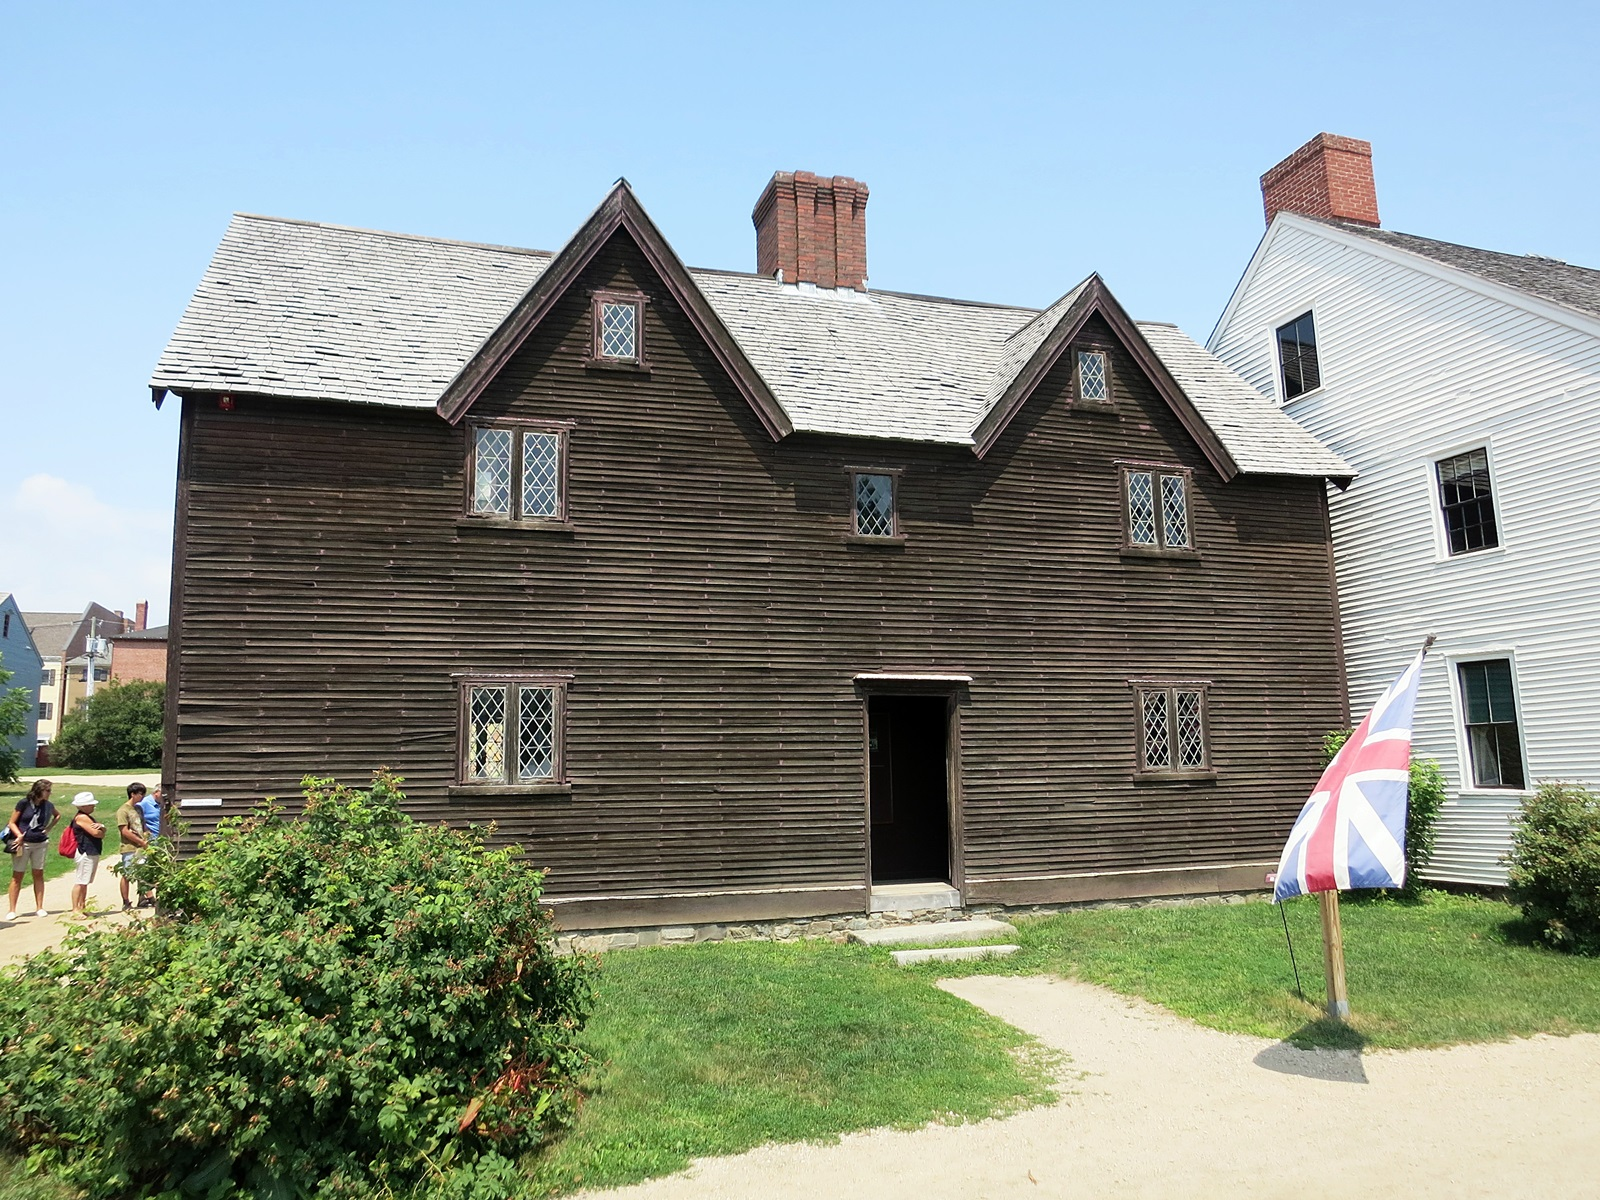 strawbery banke museum portsmouth new hampshire - New Home Architecture